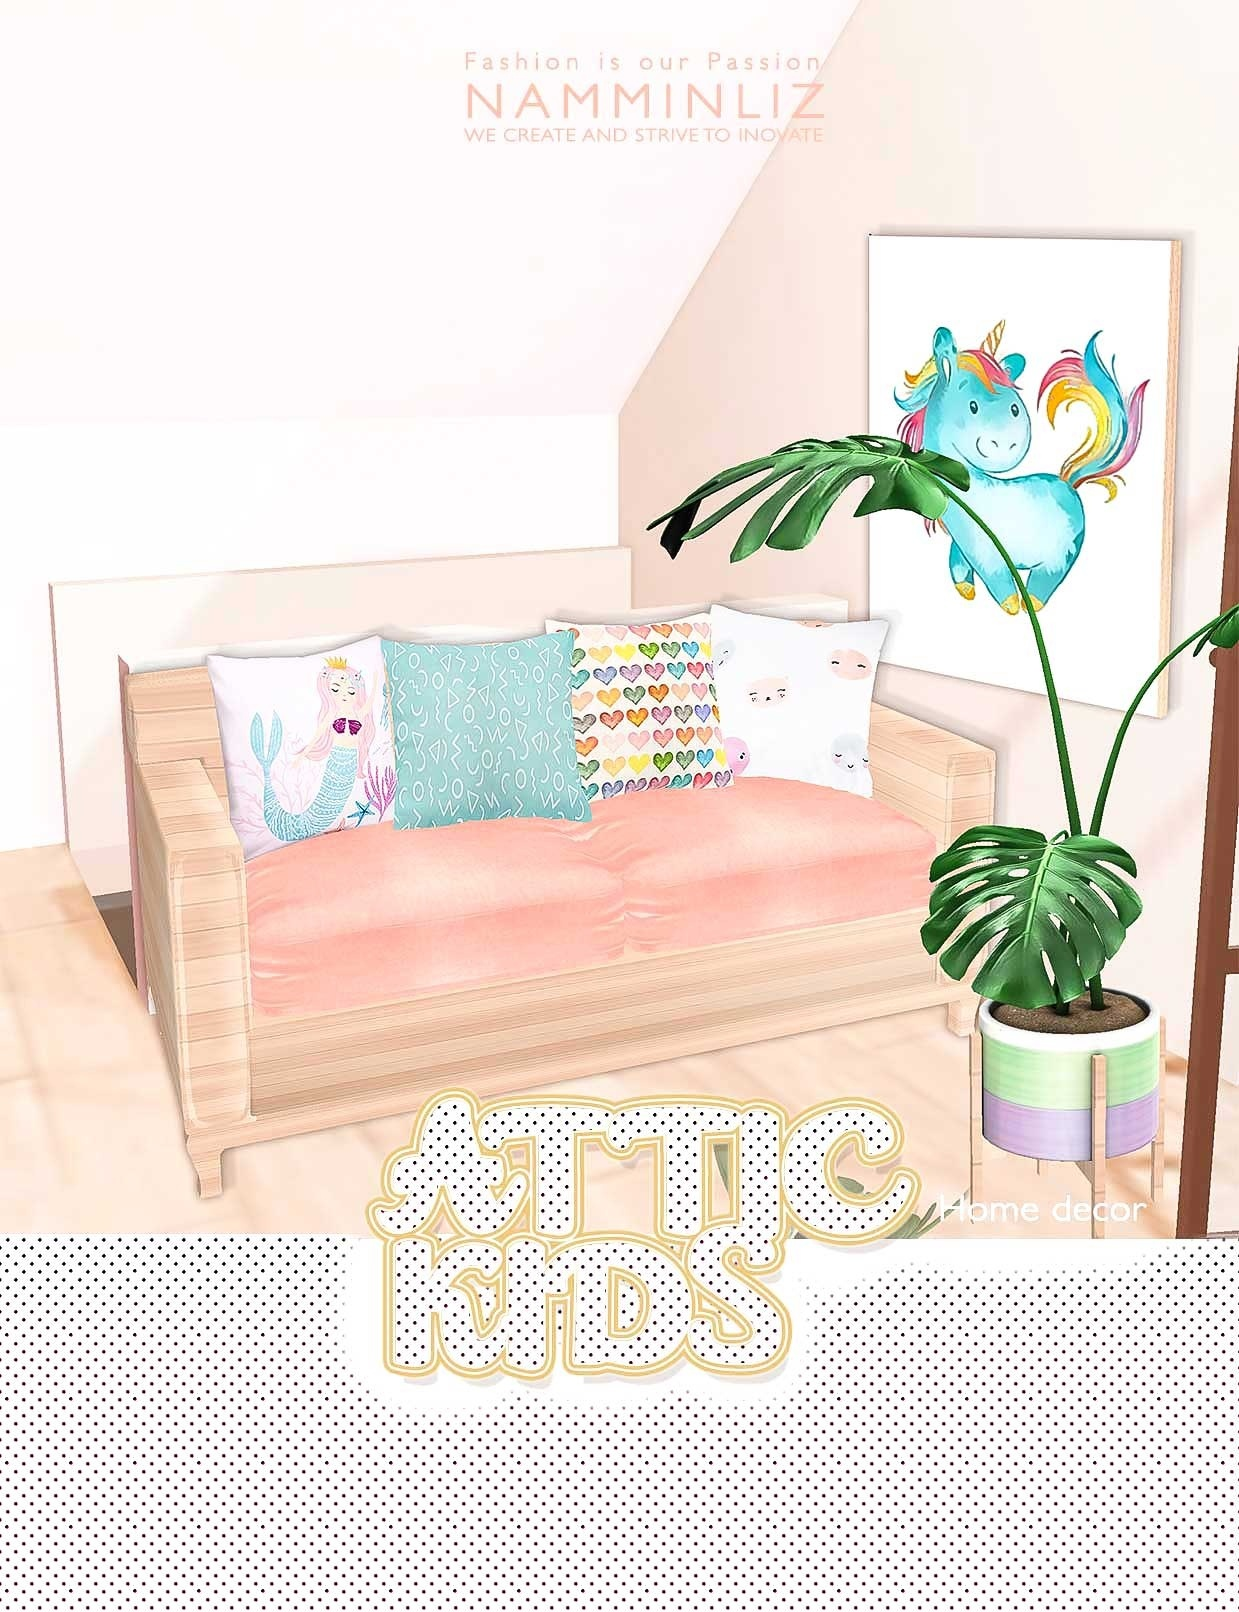 Attic Kids Home decor imvu •52 Textures JPG •11*.CHKN  Limited to 3 Person Only